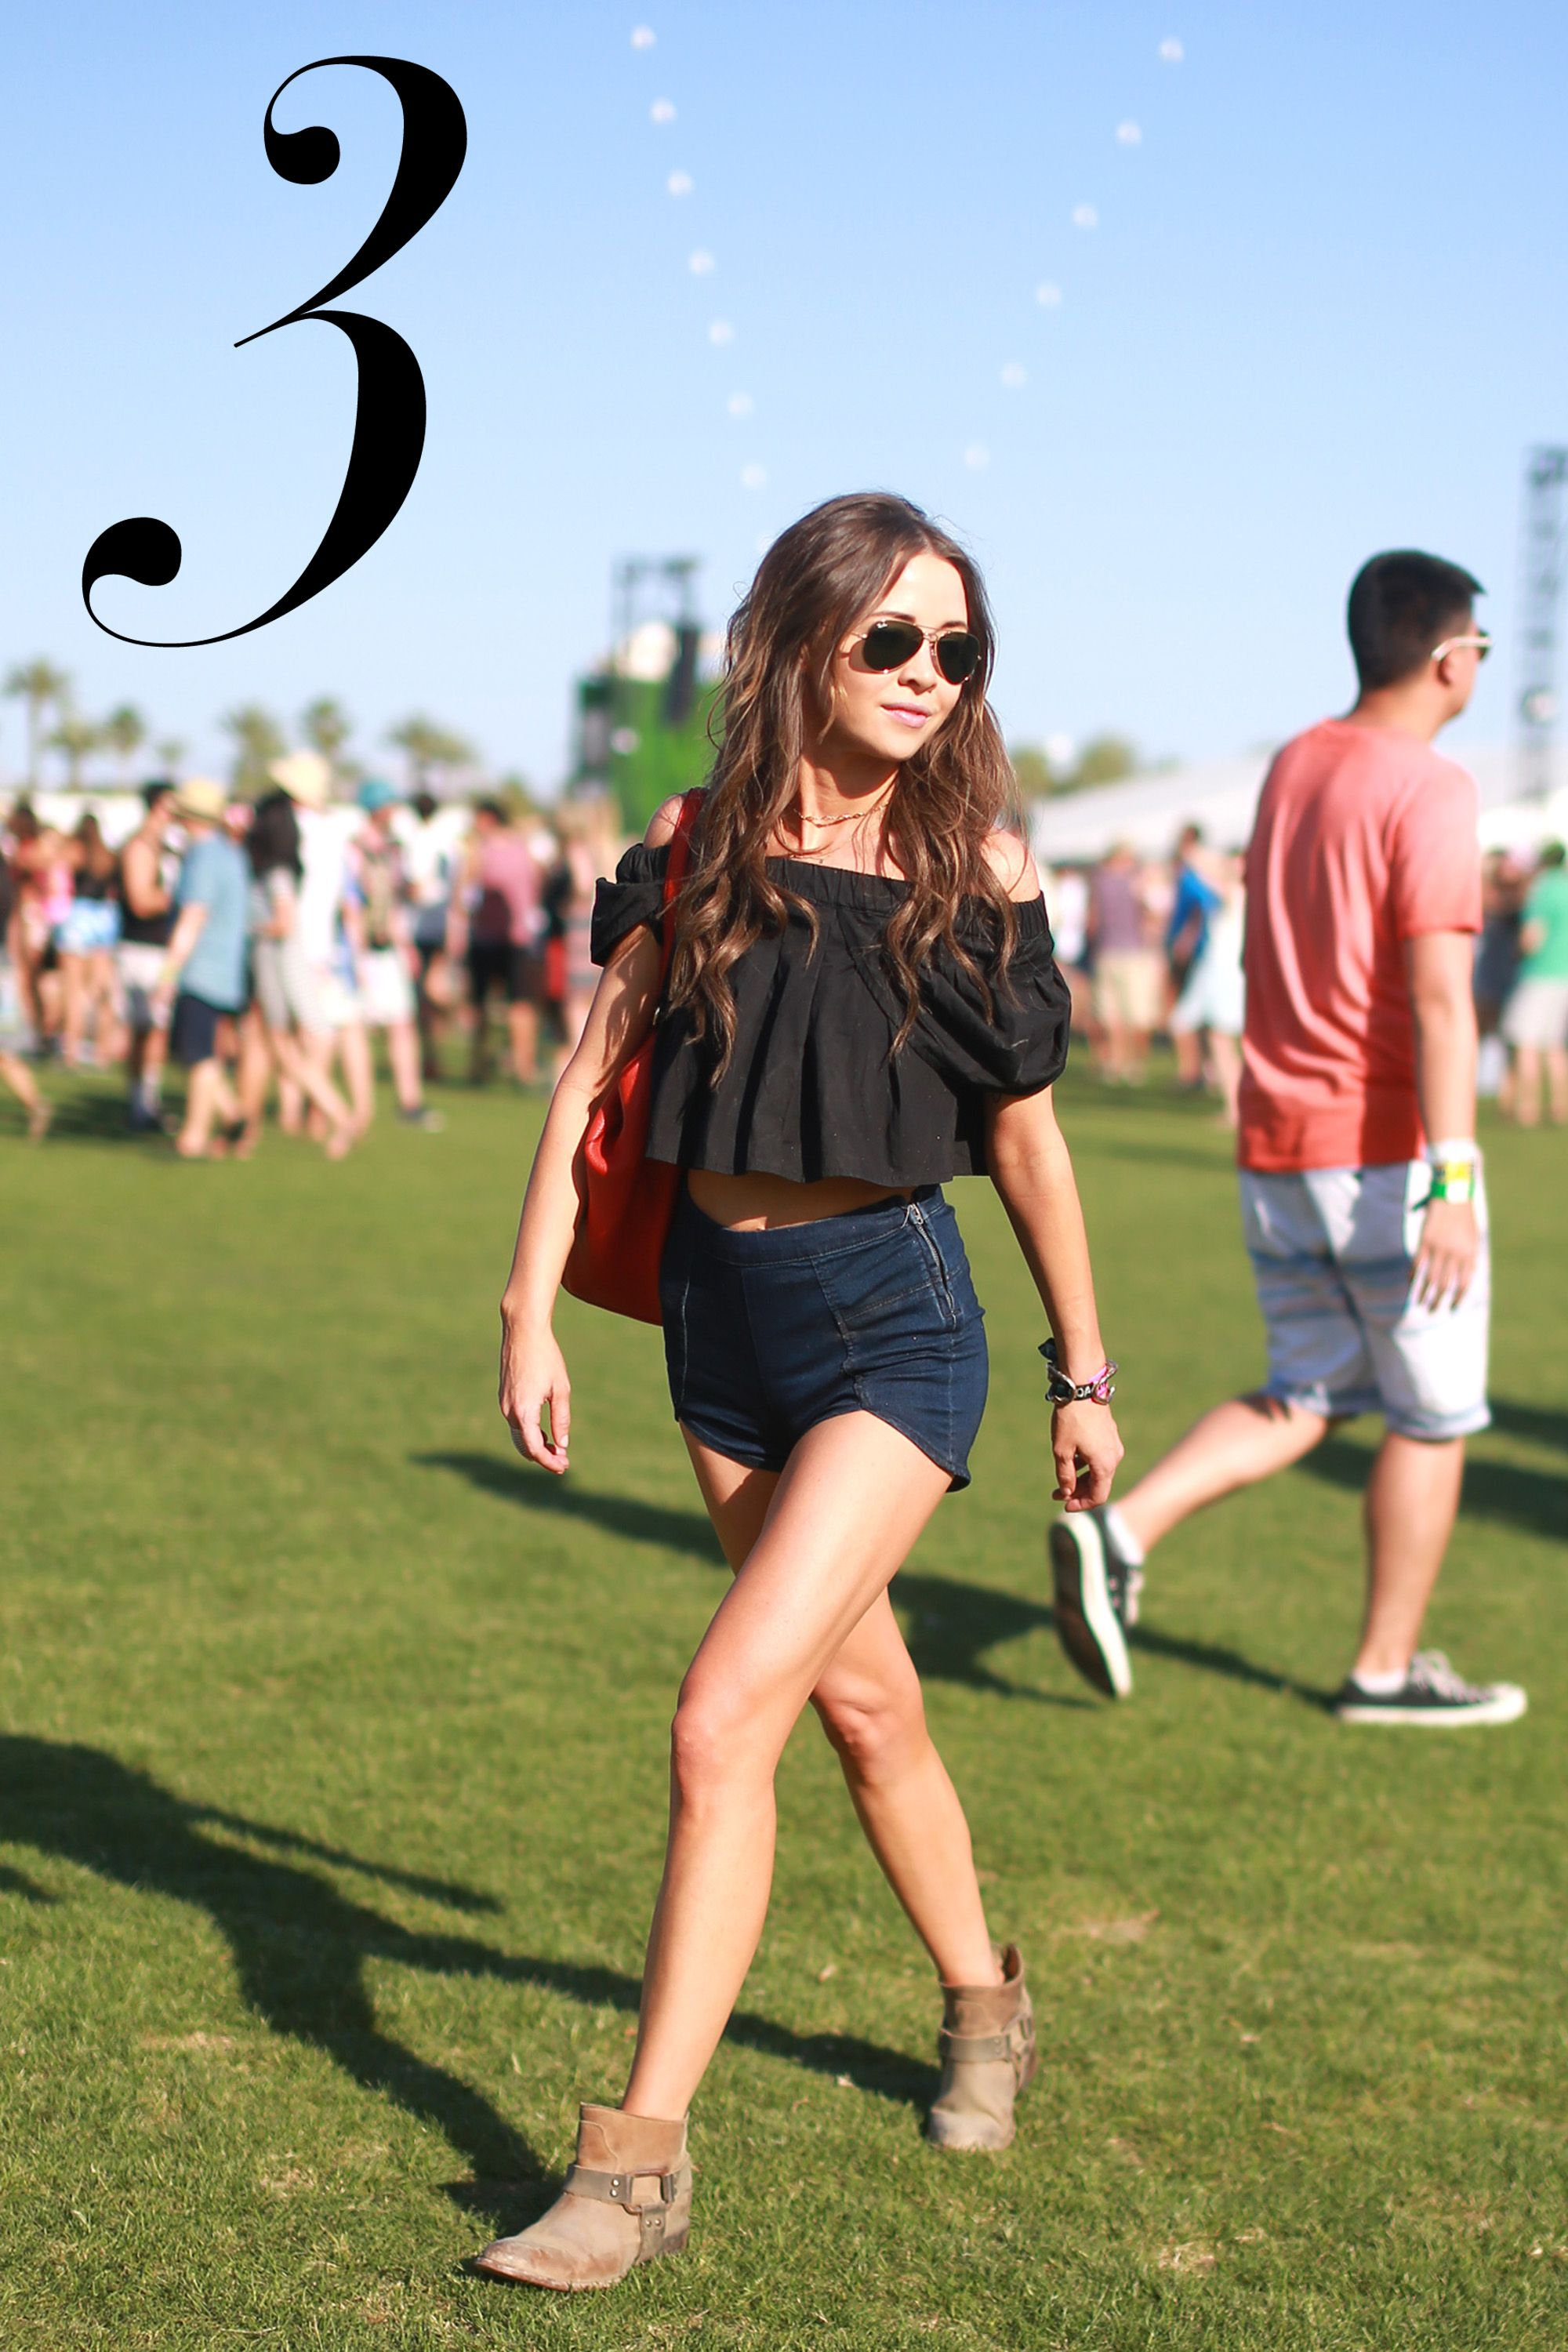 Denim shorts and a ruffled top are chic and comfortable.